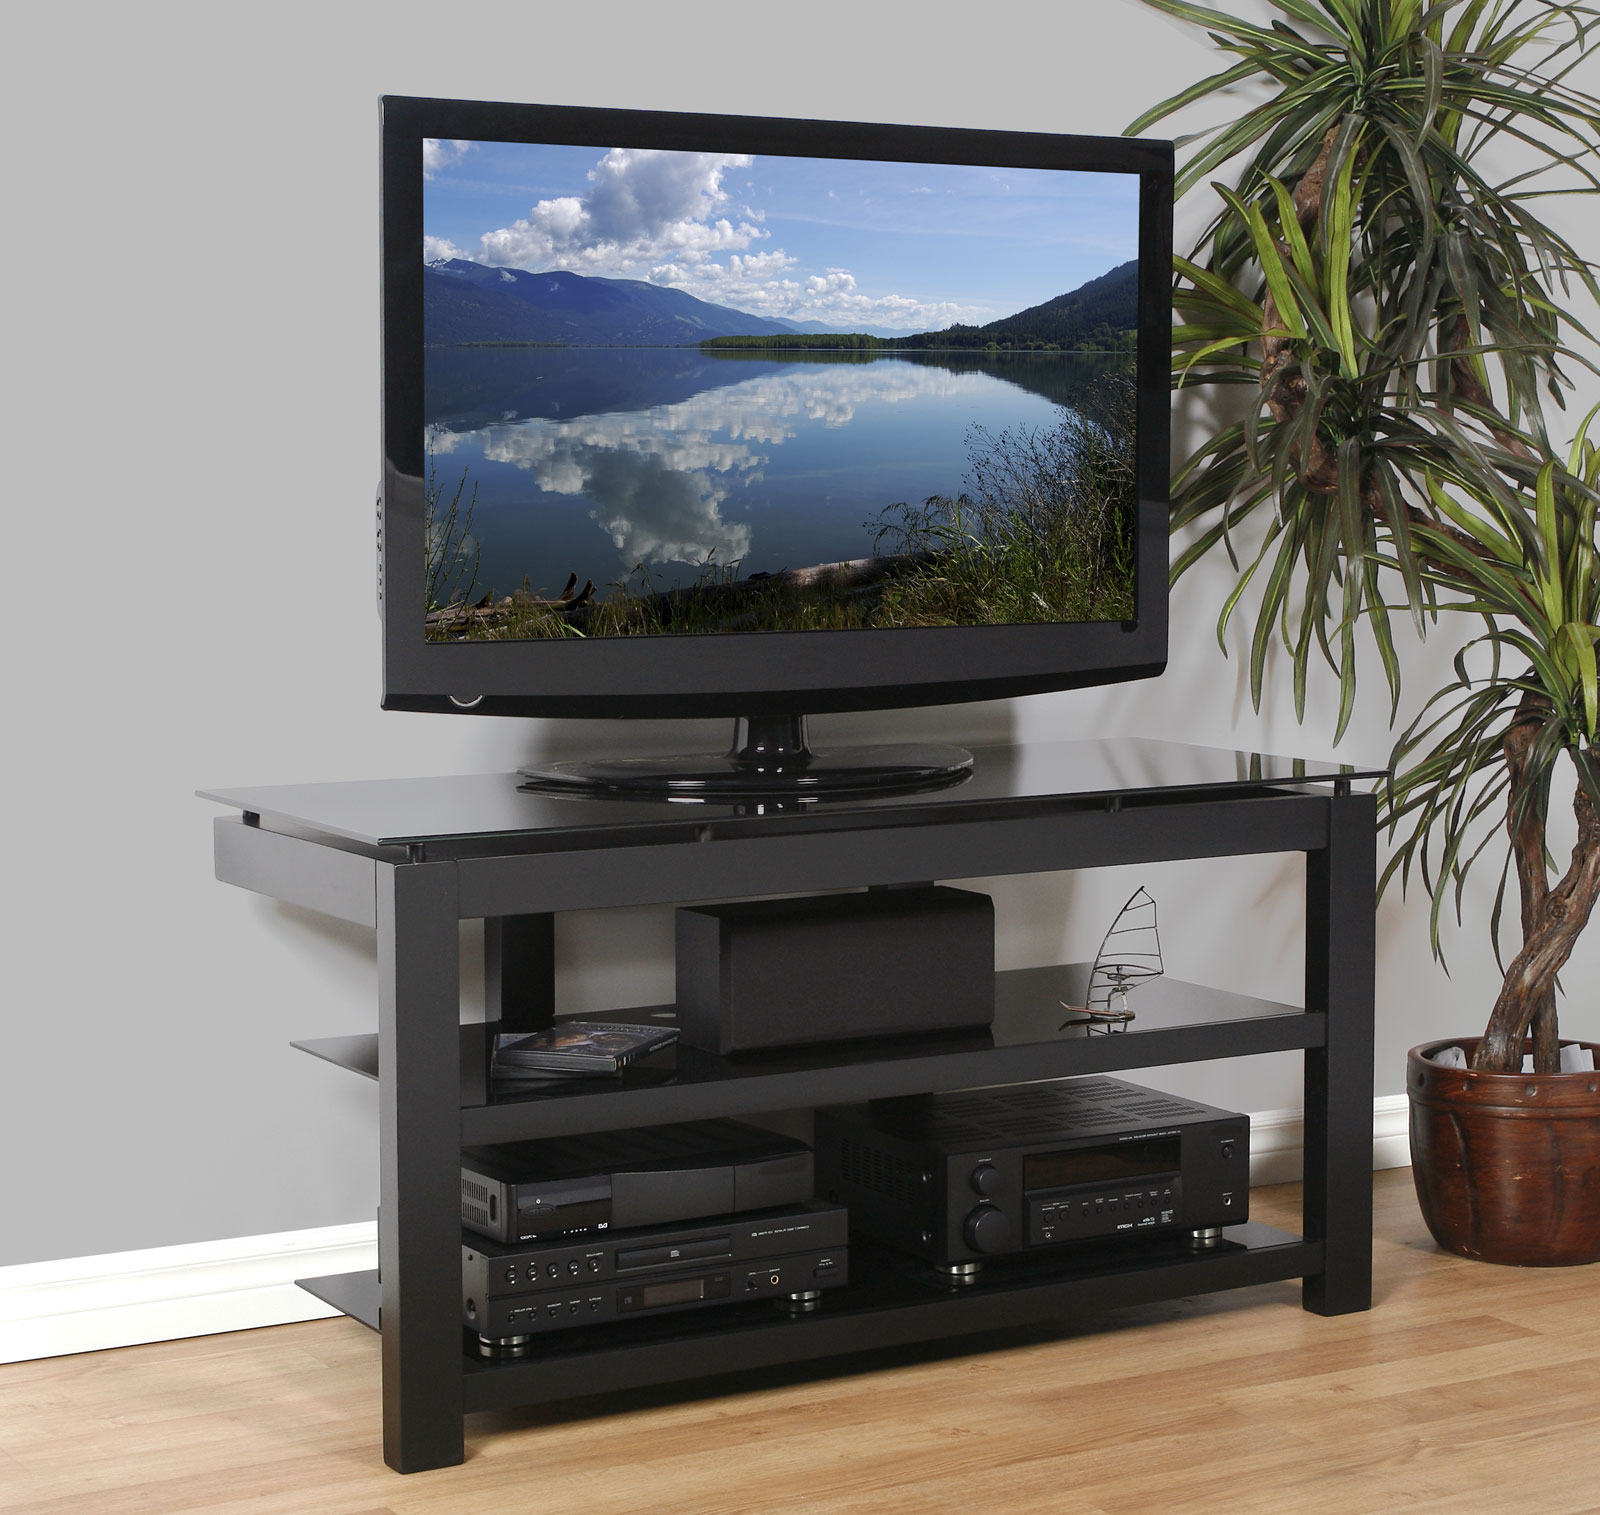 Well Known Floating Glass Tv Stands Pertaining To Glass Shelf Tv Stand 2 With Mount 4 Promounts 3 Floating Black For (View 18 of 20)